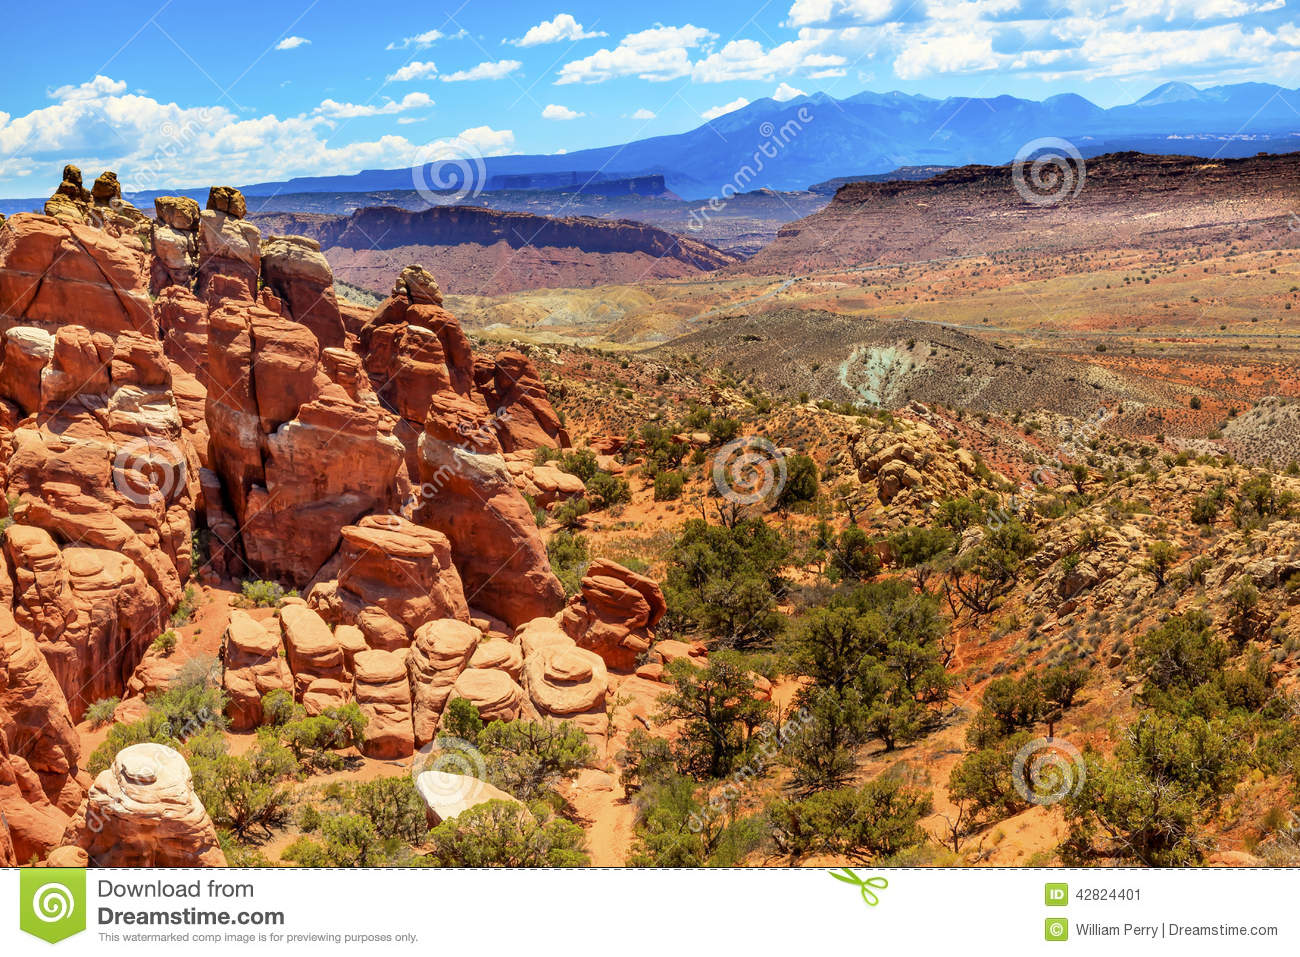 Moab Desert clipart #14, Download drawings